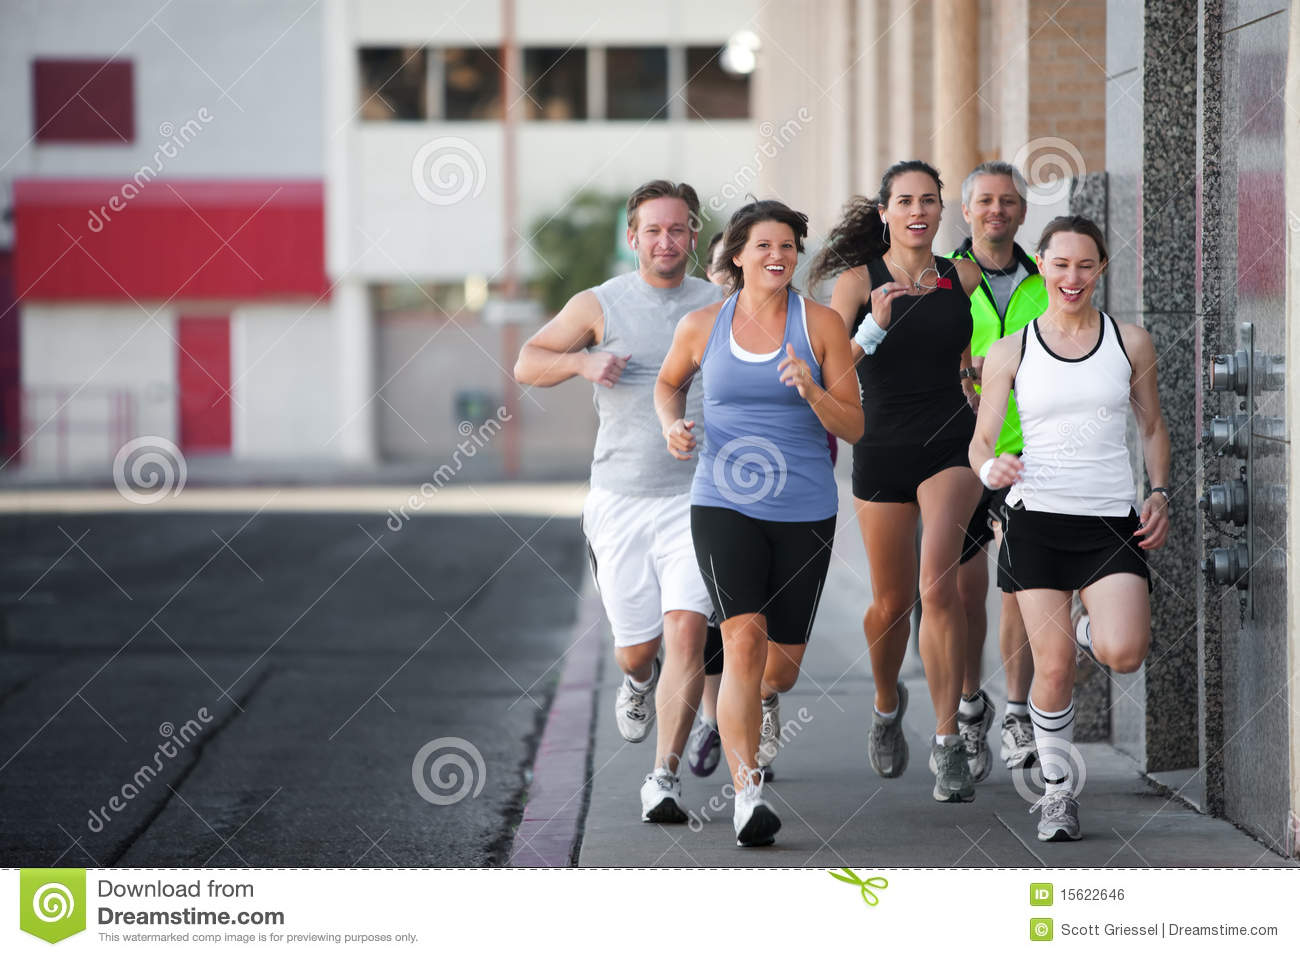 Group of friends runs downtown.